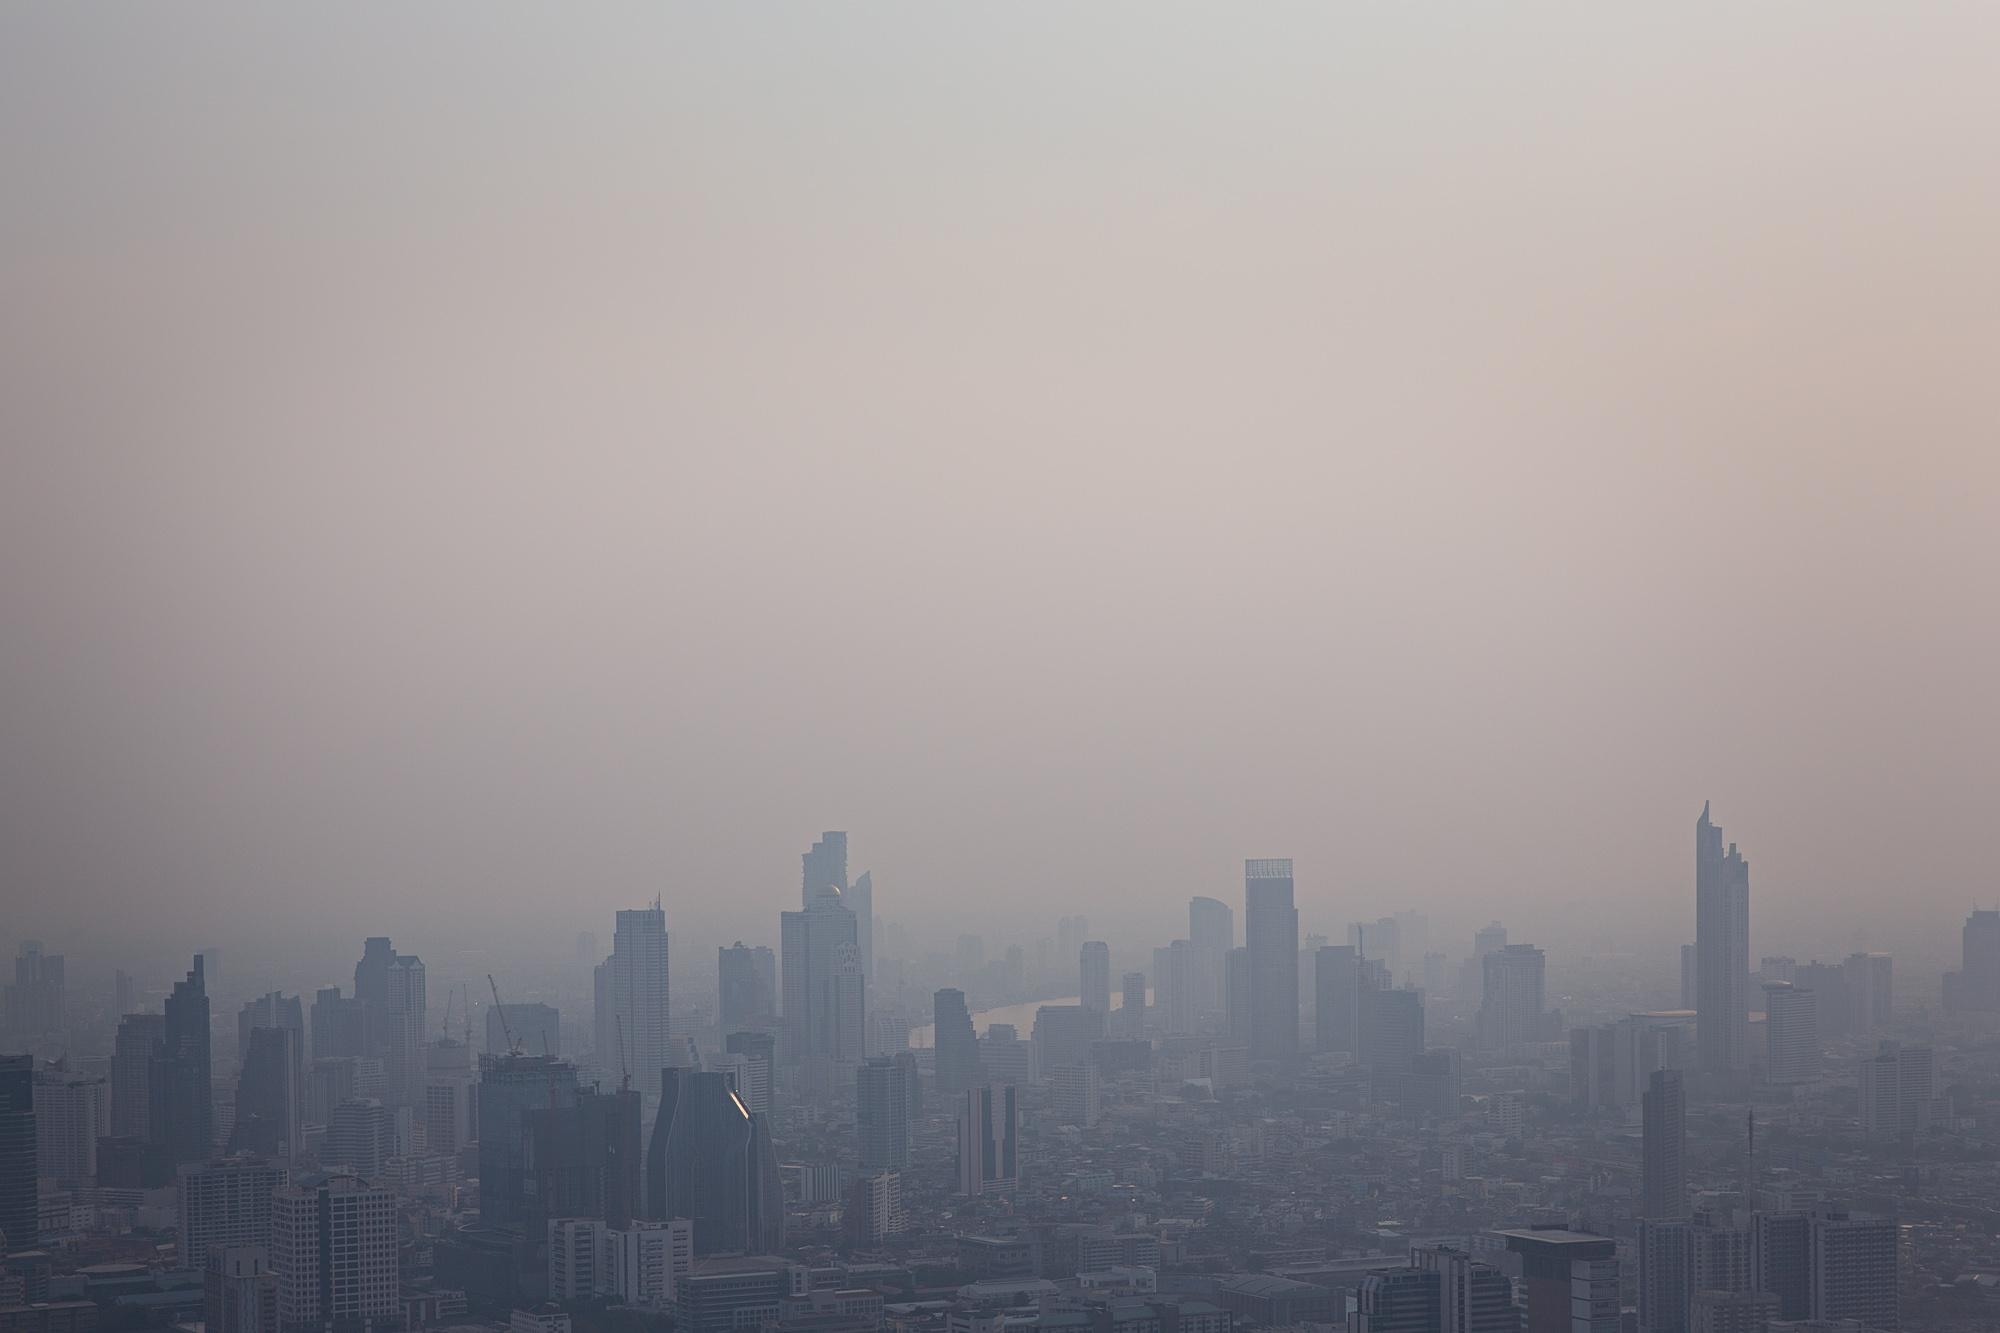 Severe smog is seen over Bangkok, Thailand.